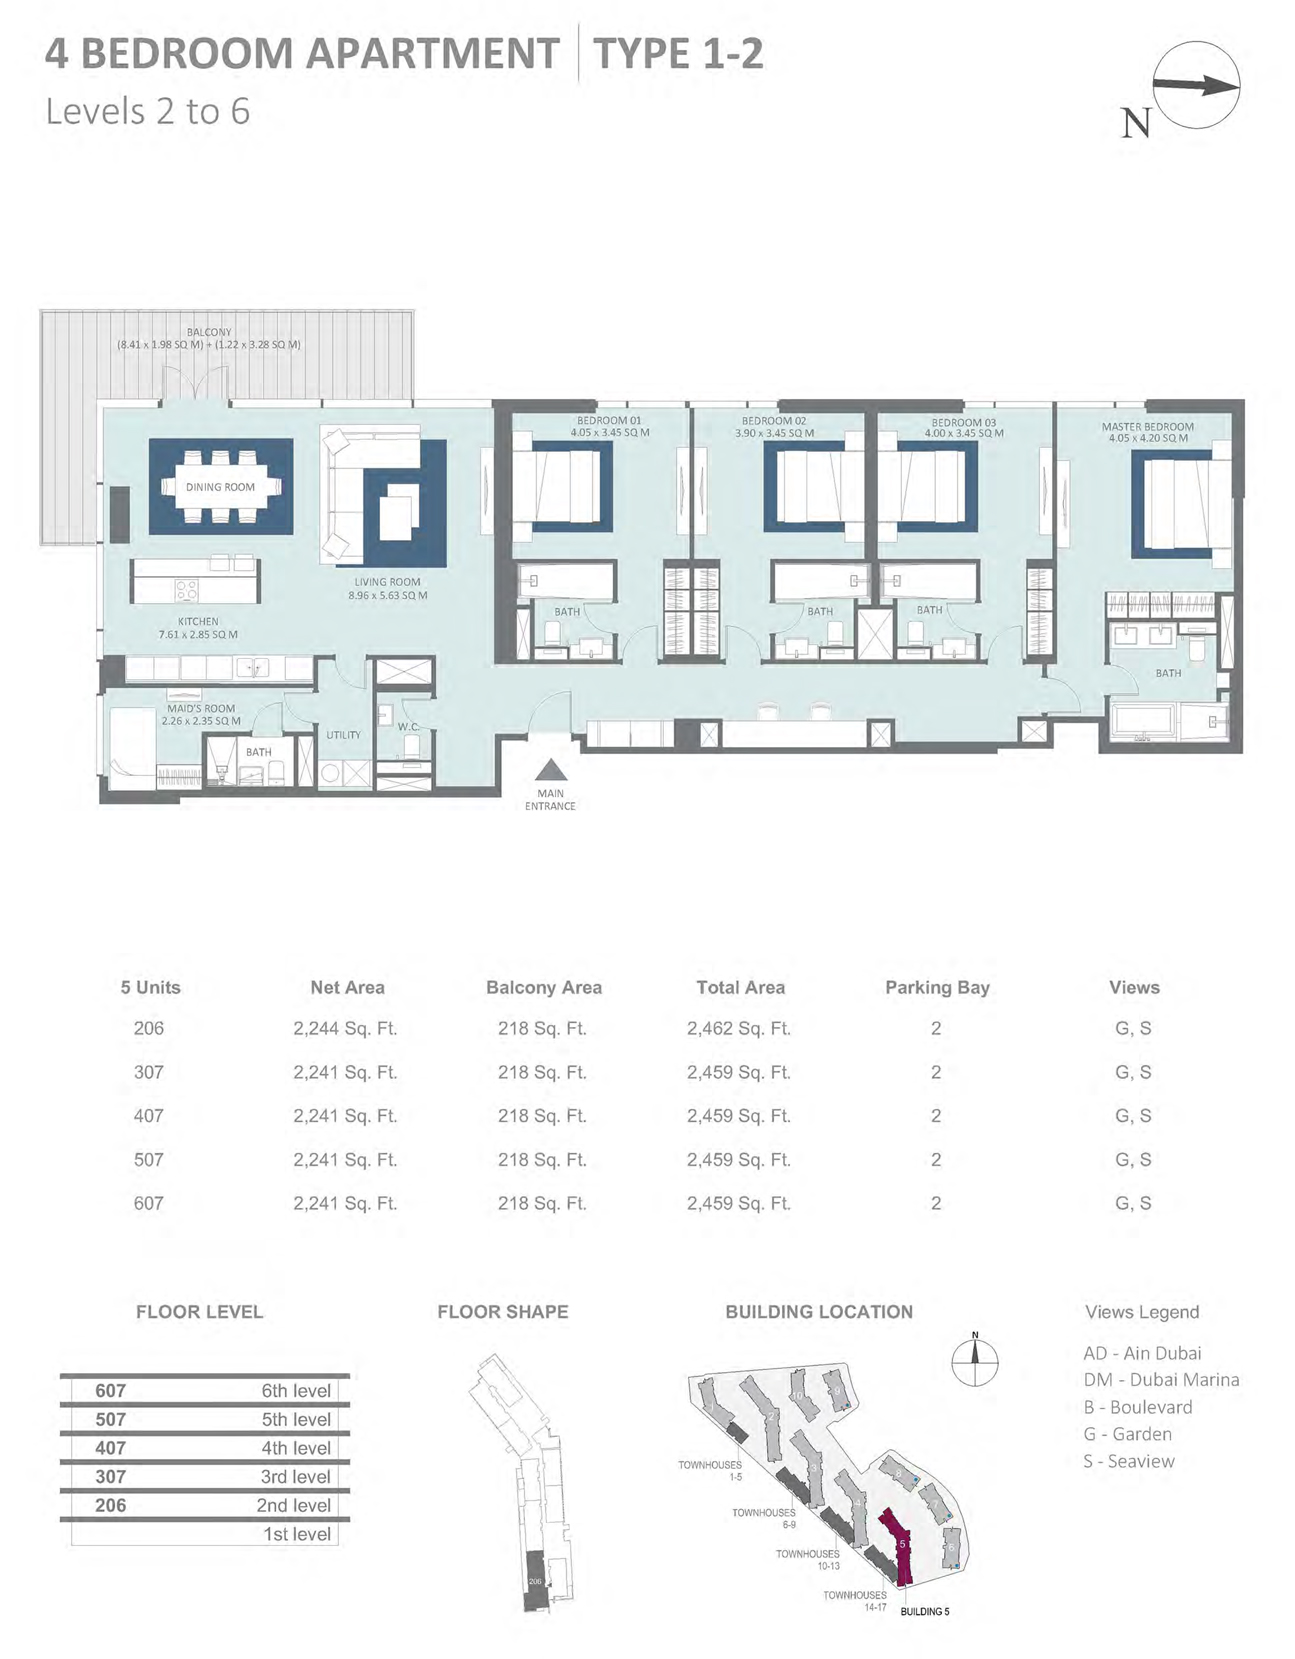 Building 5 - 4 Bedroom Type 1-2 Level 2-6 , Size 2462    sq. ft.